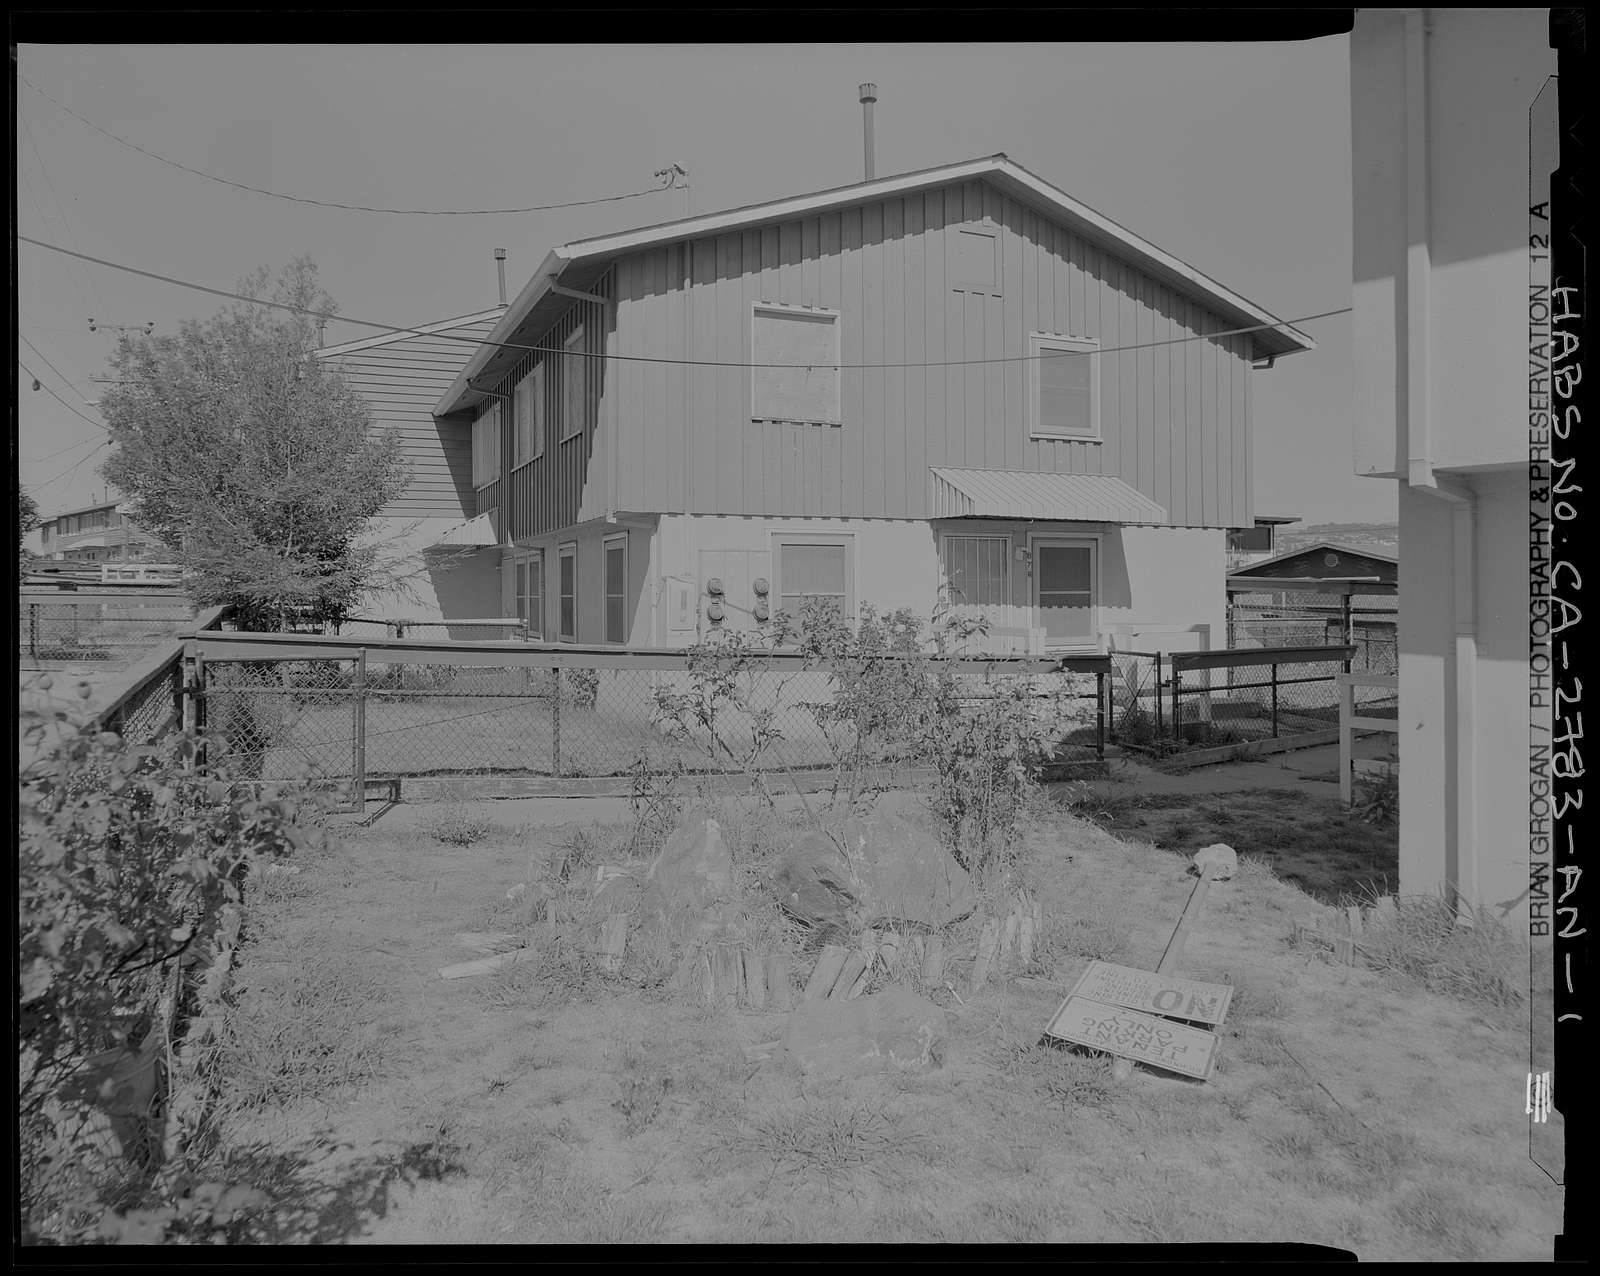 Easter Hill Village, Building No. 47, East side of South Twenty-eighth Street, north of Hinkley Avenue, Richmond, Contra Costa County, CA